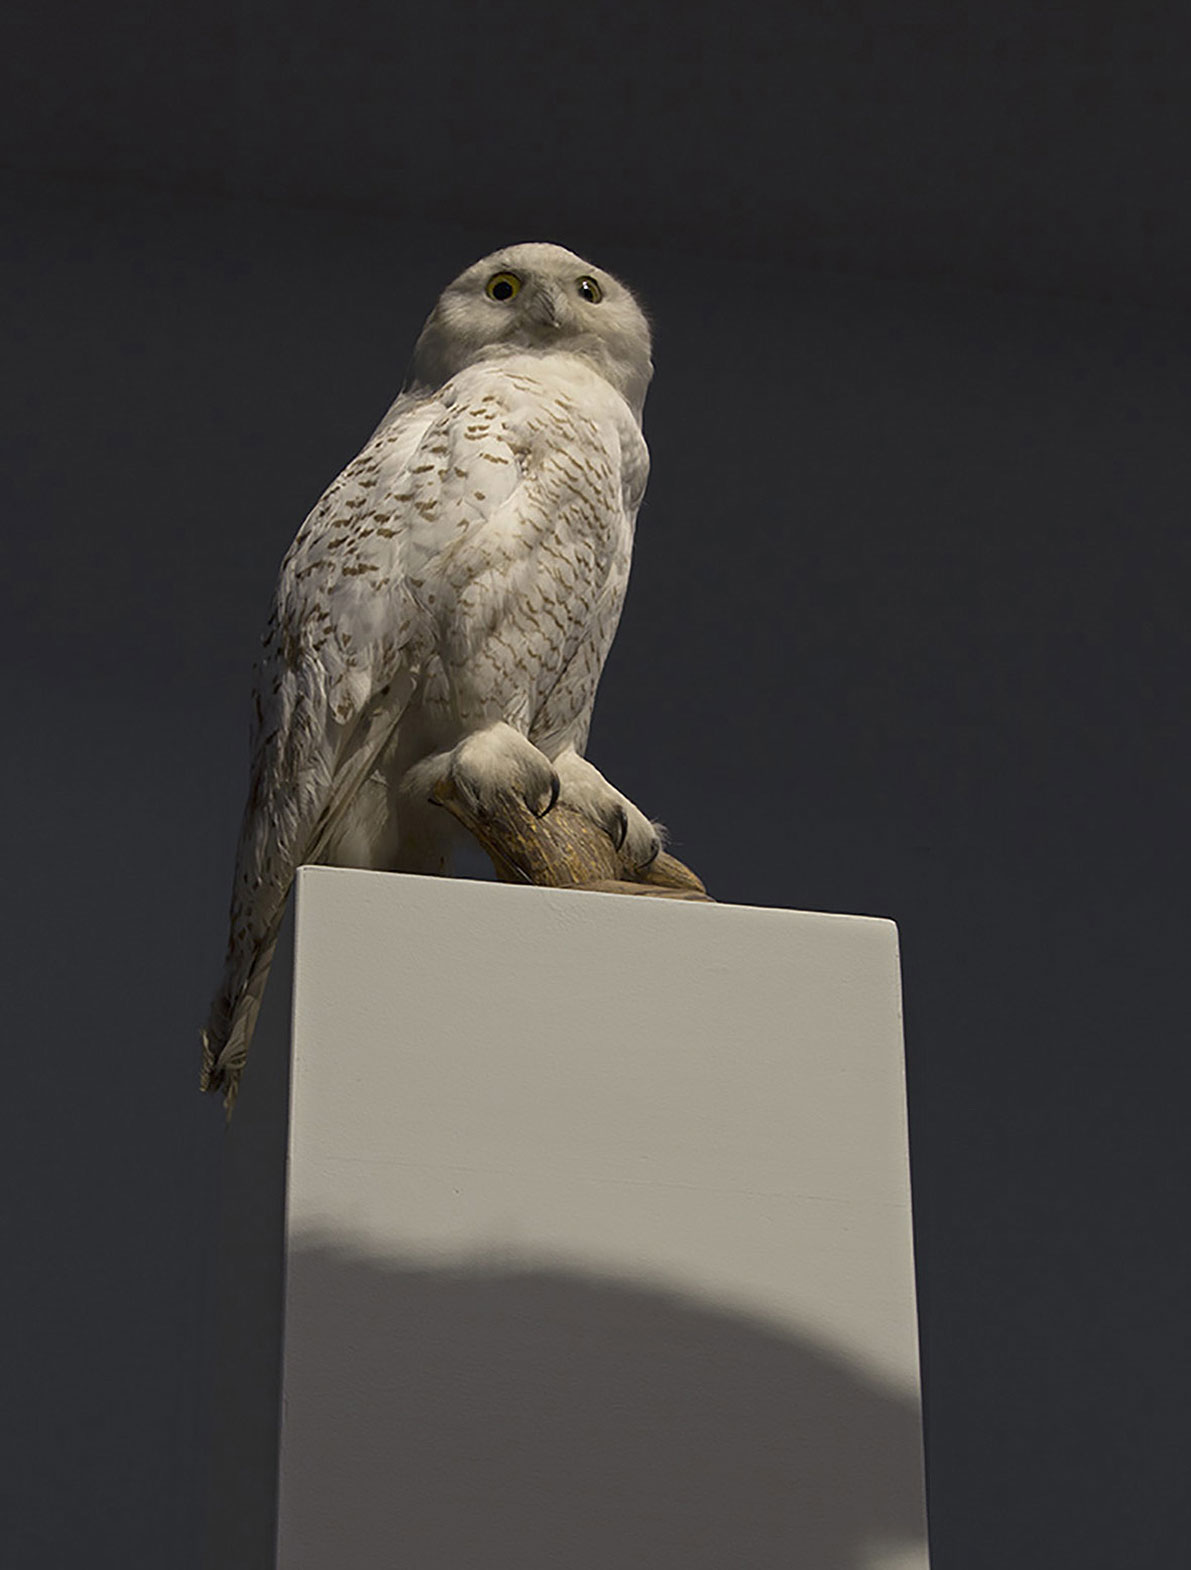 Observatory, taxidermied Snowy owl